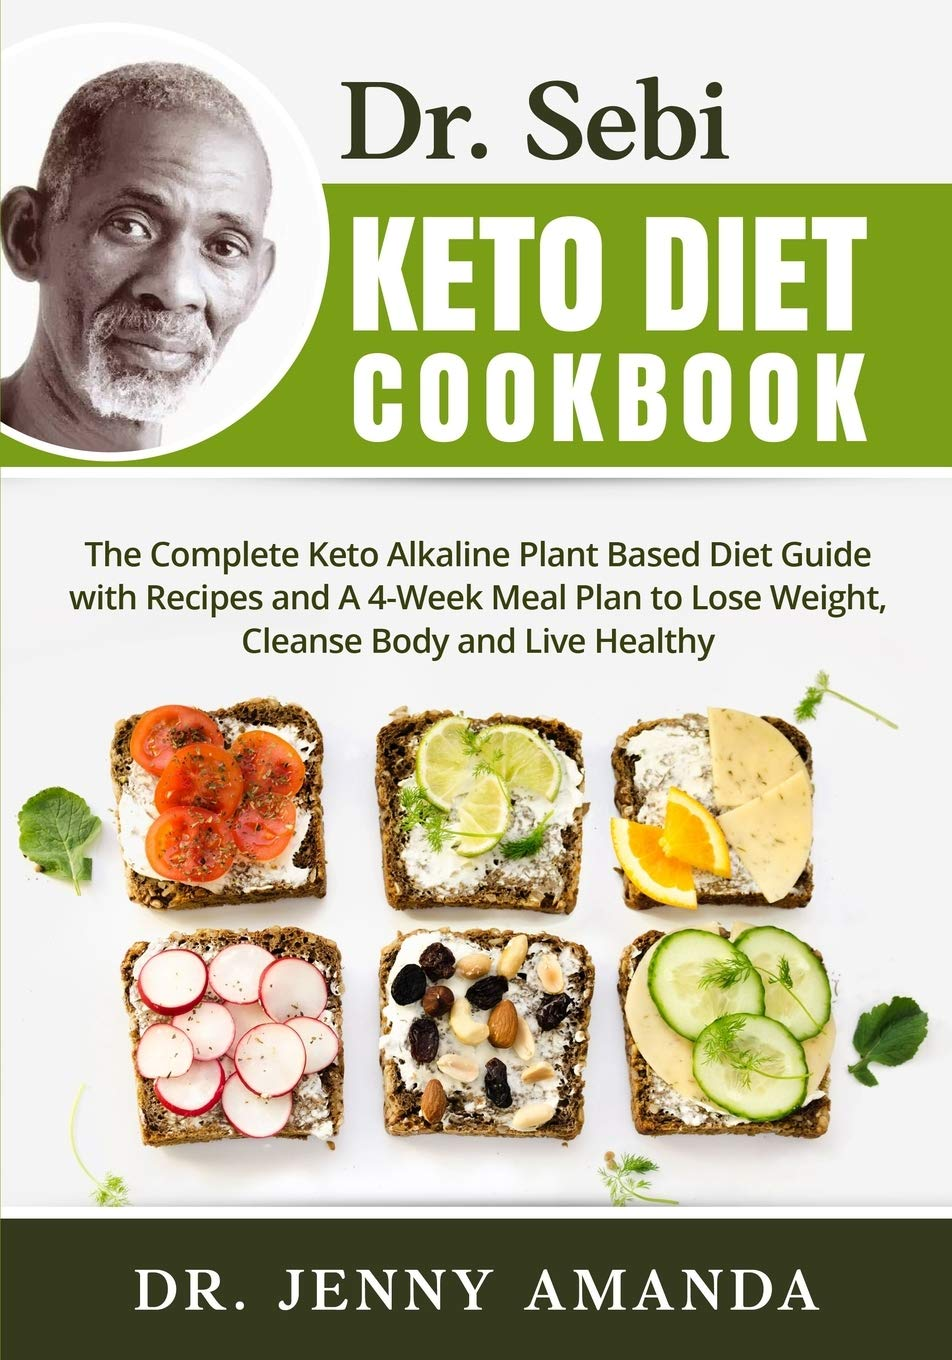 Dr Sebi Keto Diet Cookbook The Complete Keto Alkaline Plant Based Diet Guide With Recipes And A 4 Week Meal Plan To Lose Weight Cleanse Body And Live Healthy Amanda Dr Jenny 9798665143088